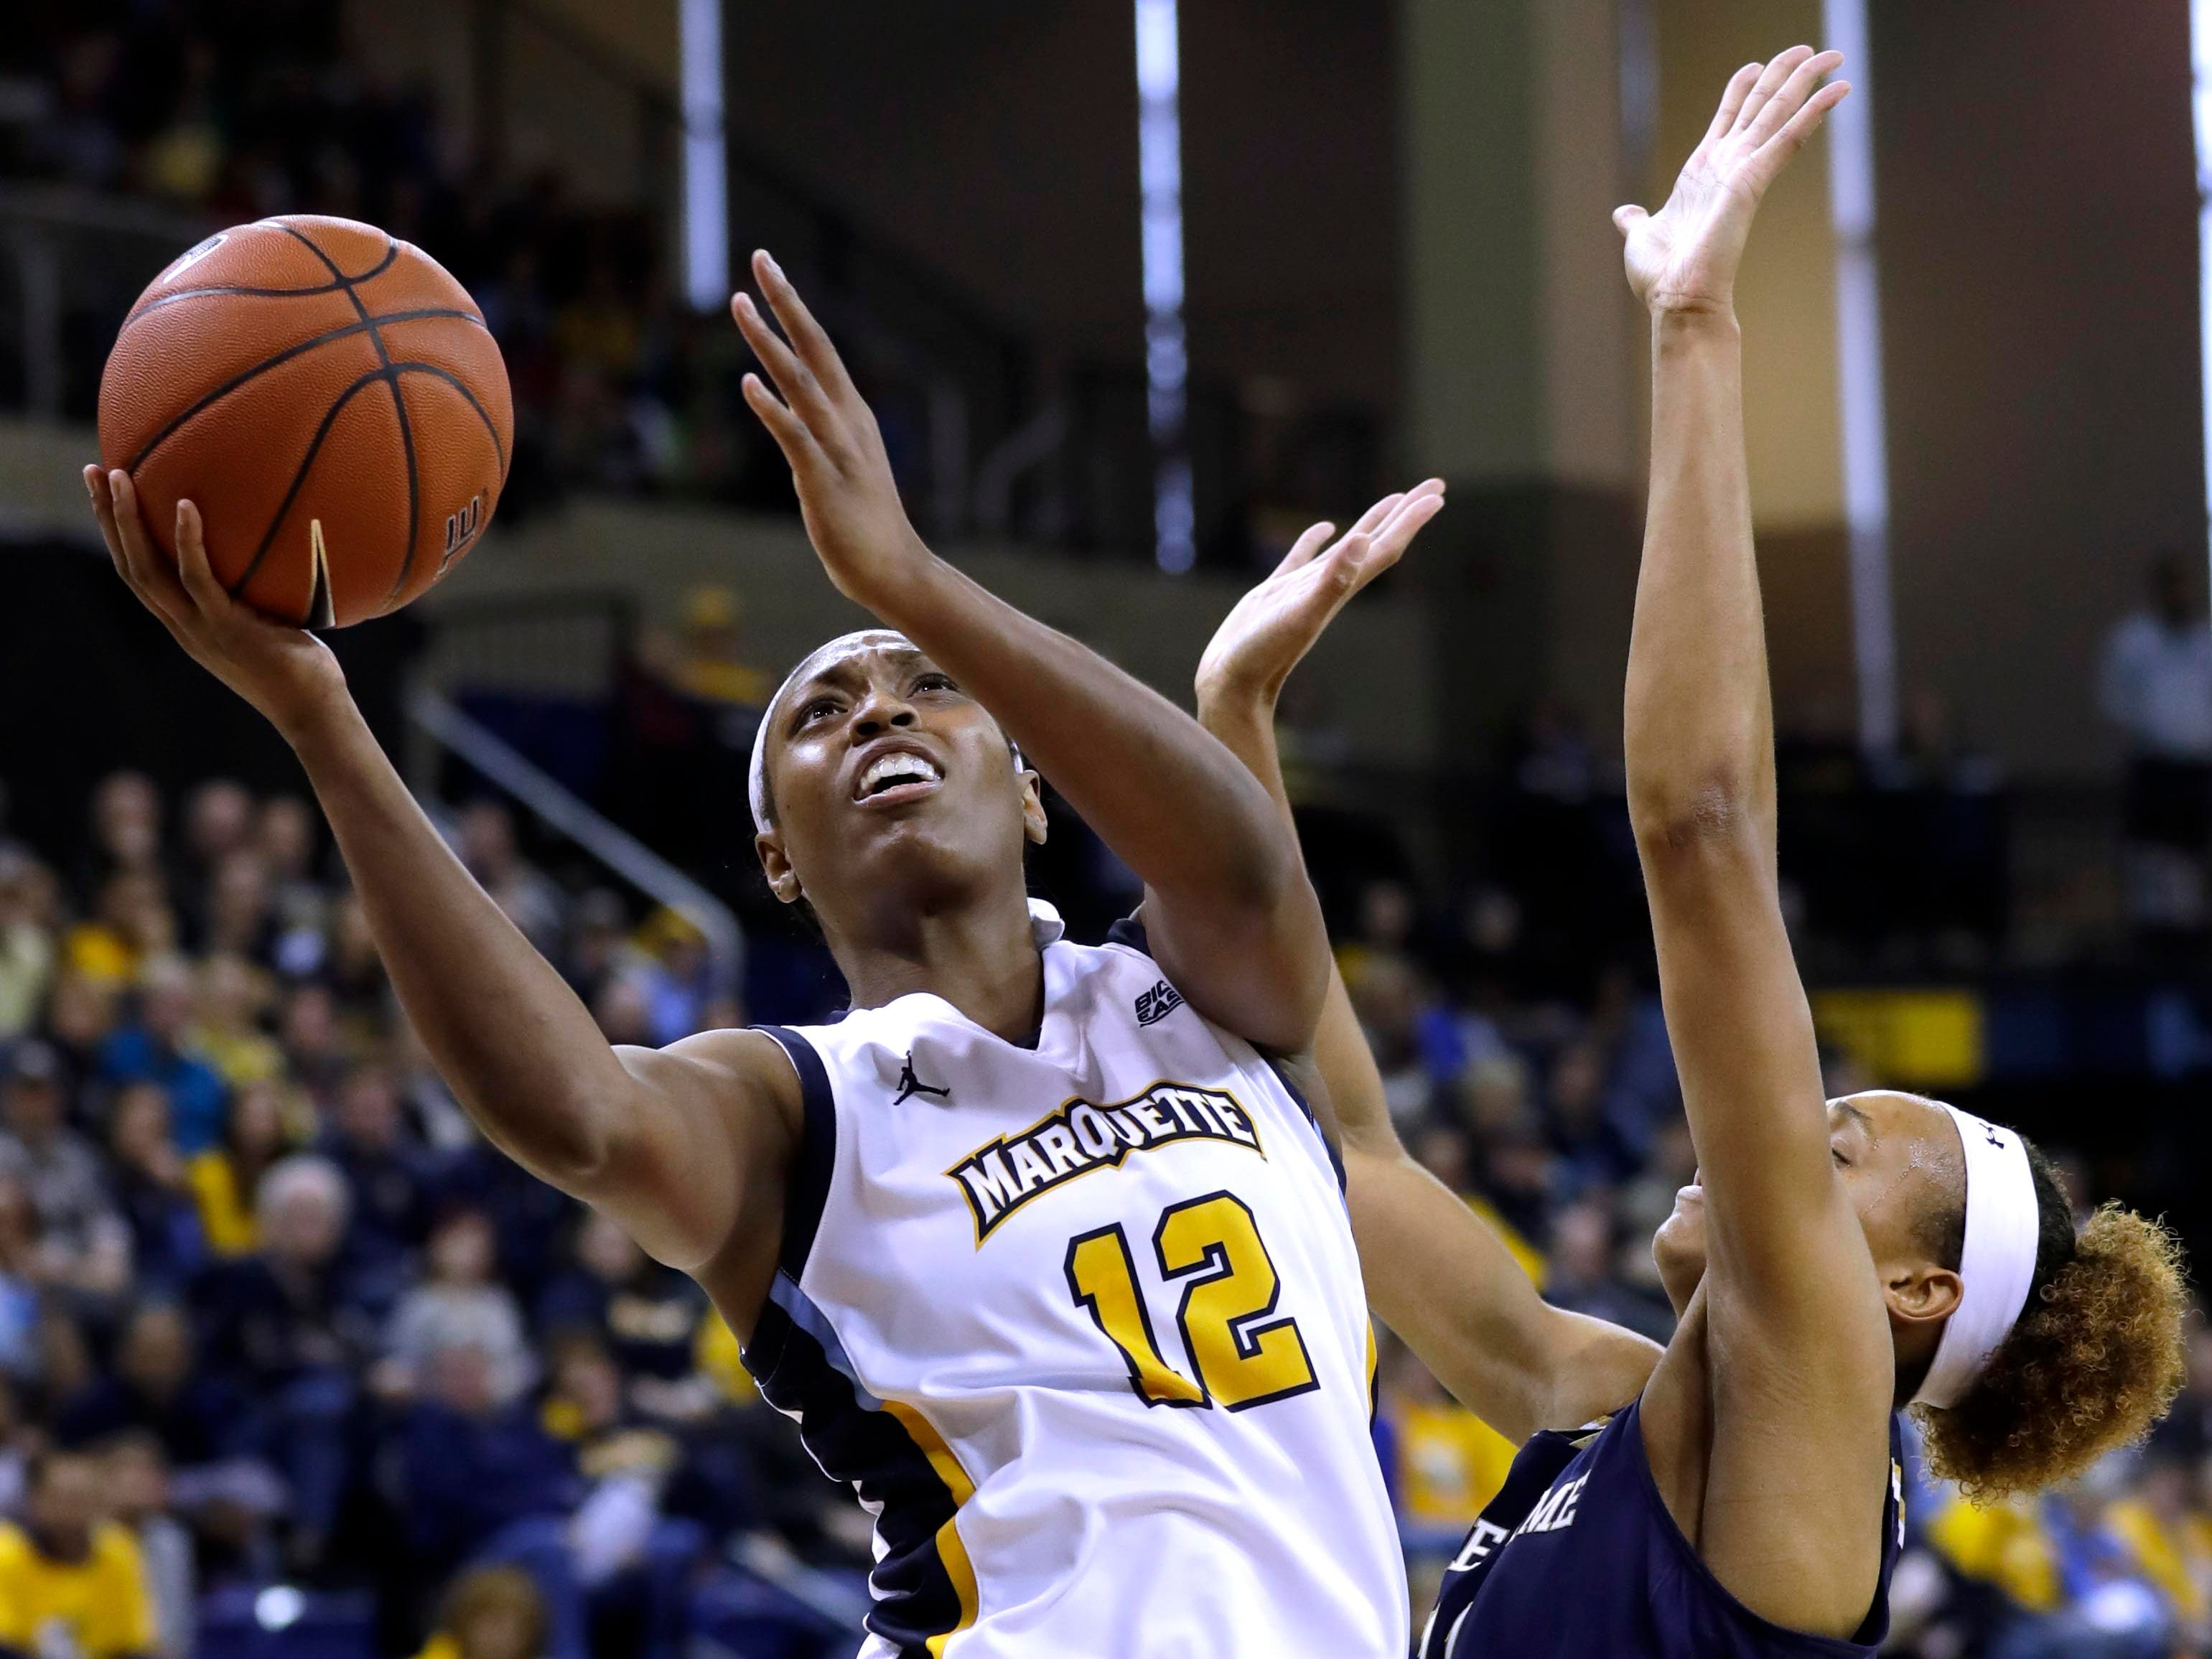 Marquette forward Erika Davenport scores on a drive to the basket.